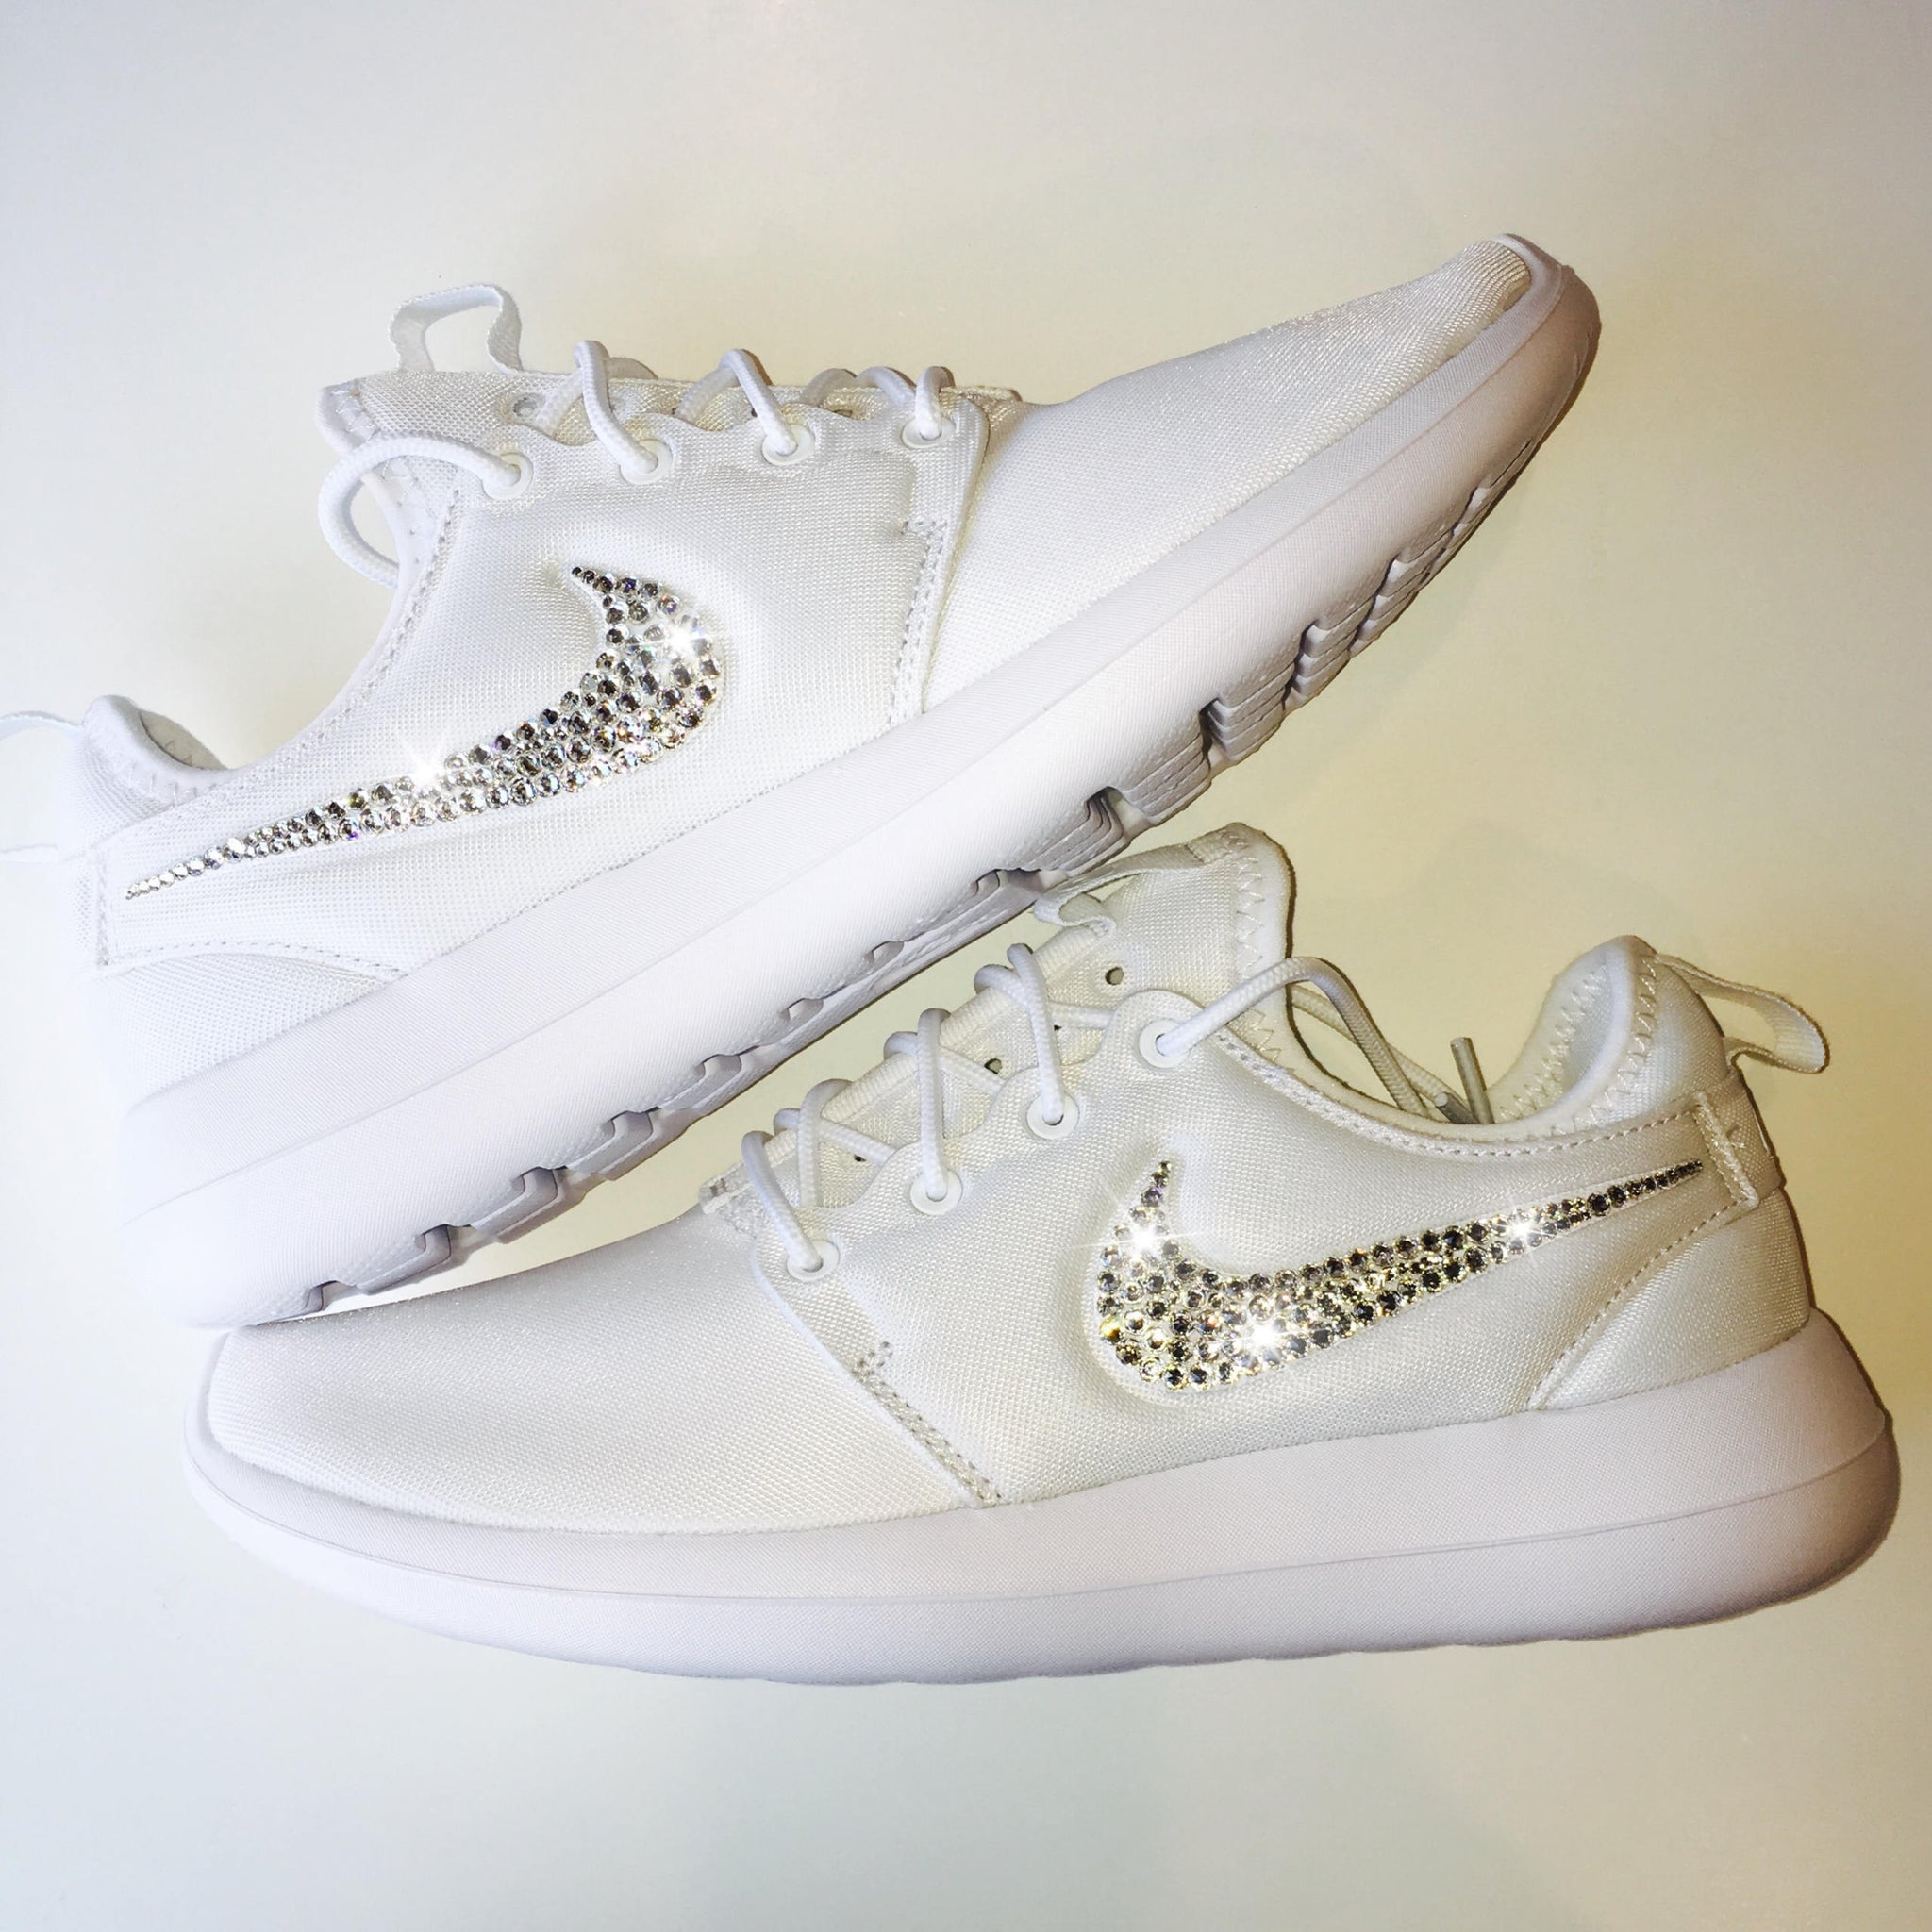 Bling Nike Roshe Two Shoes with Swarovski Crystals * White